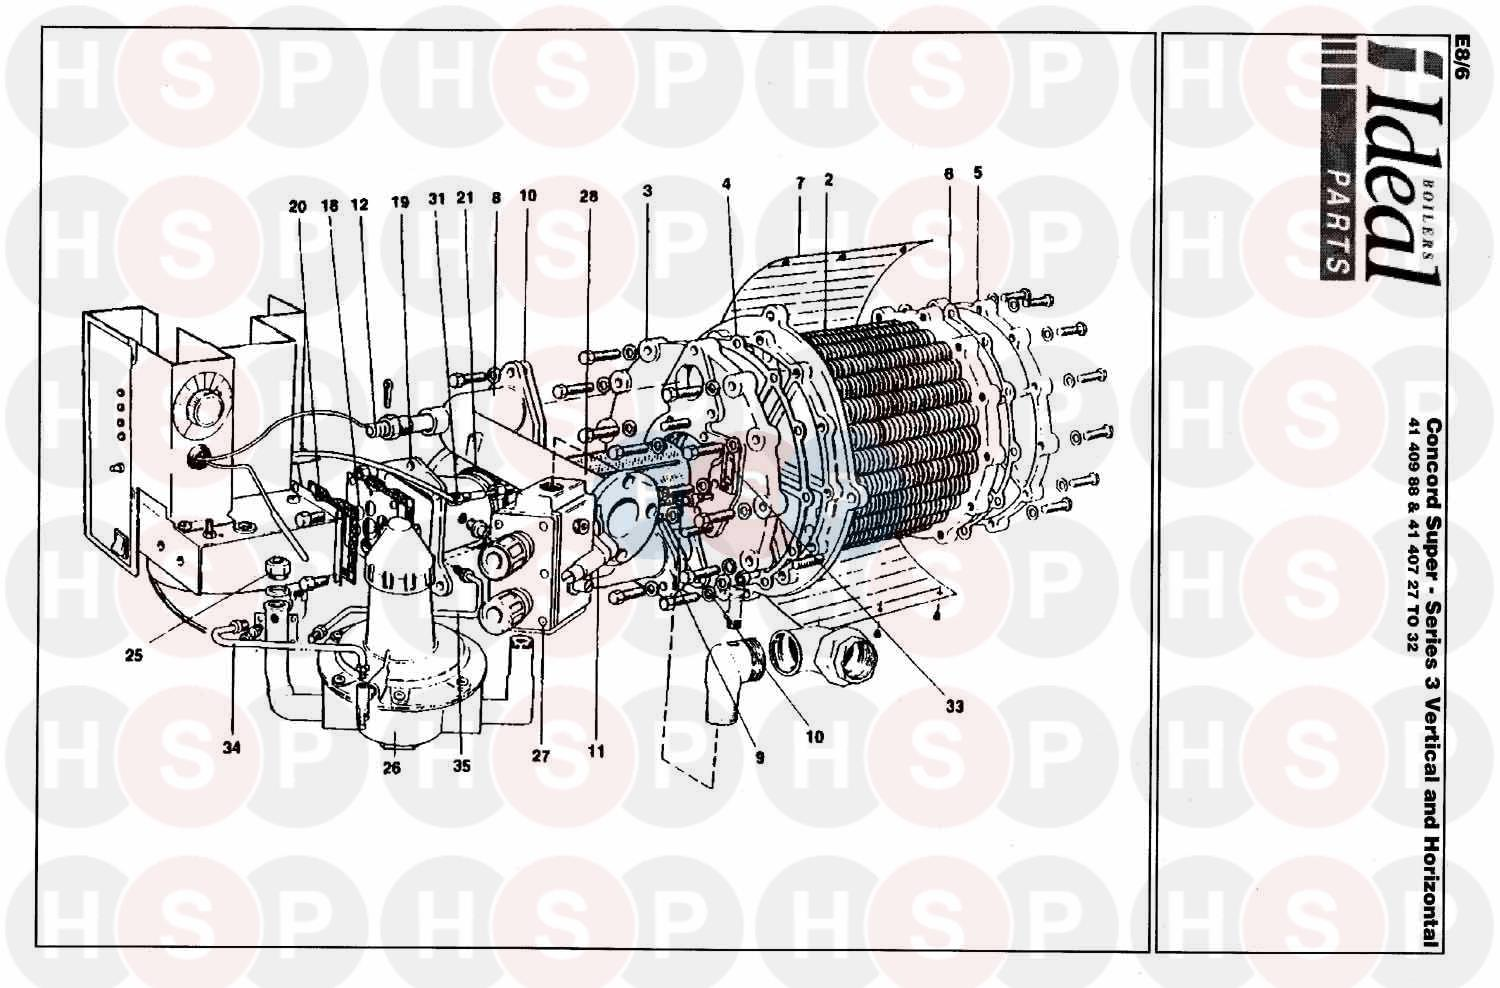 Ideal CONCORD SUPER 50 V&H SERIES 3 (BOILER ASSEMBLY 1